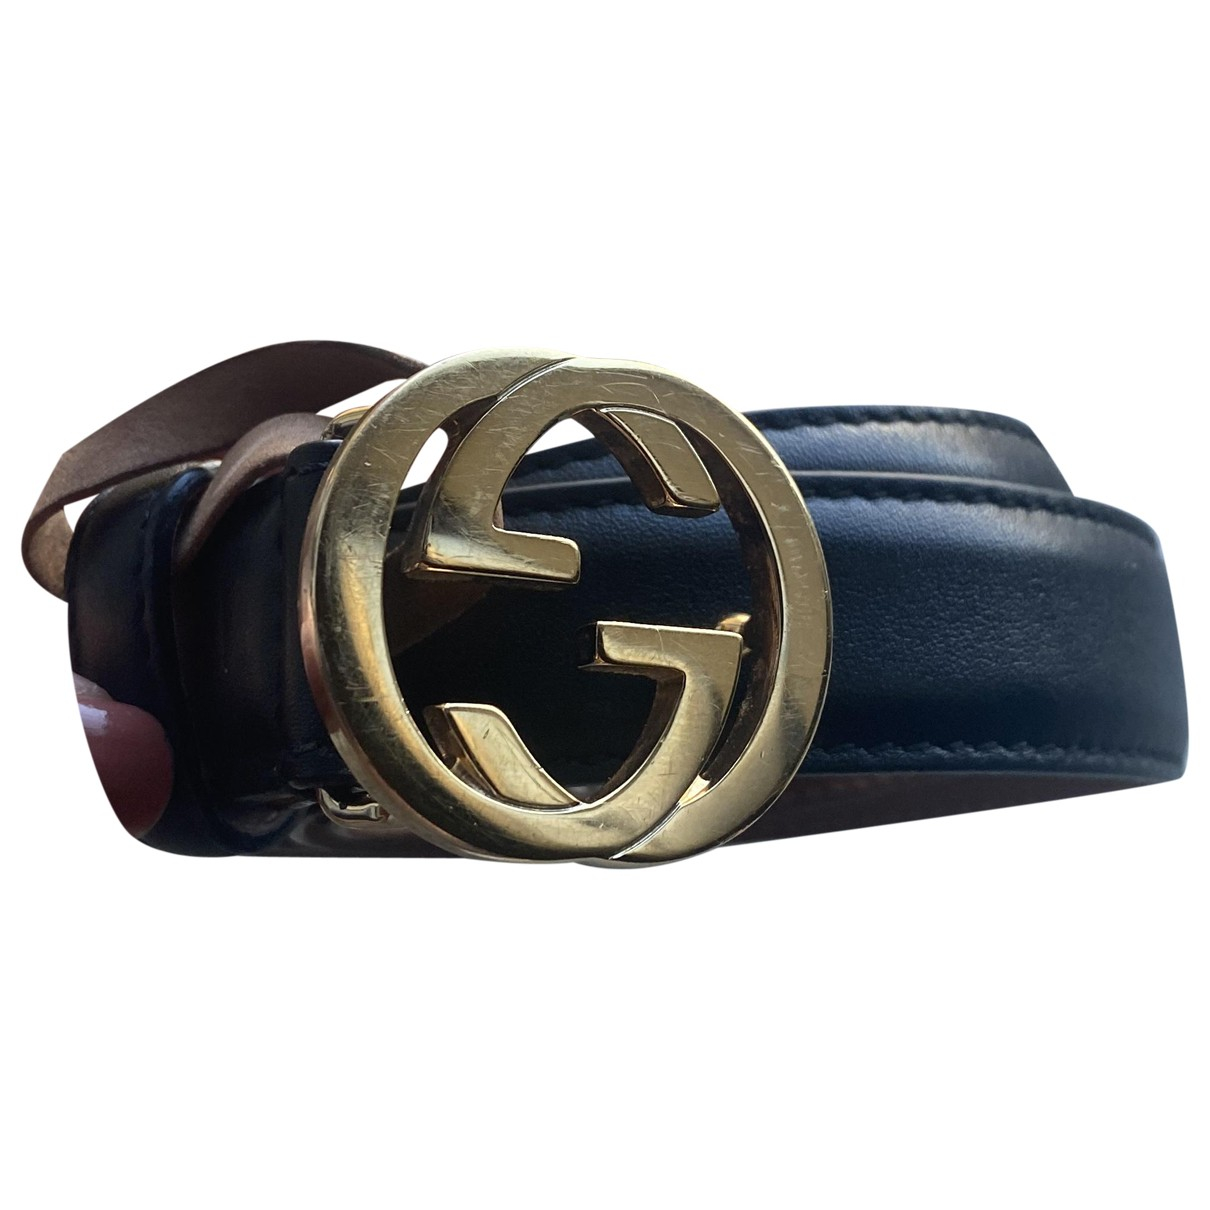 Gucci Interlocking Buckle Black Leather belt for Women 80 cm